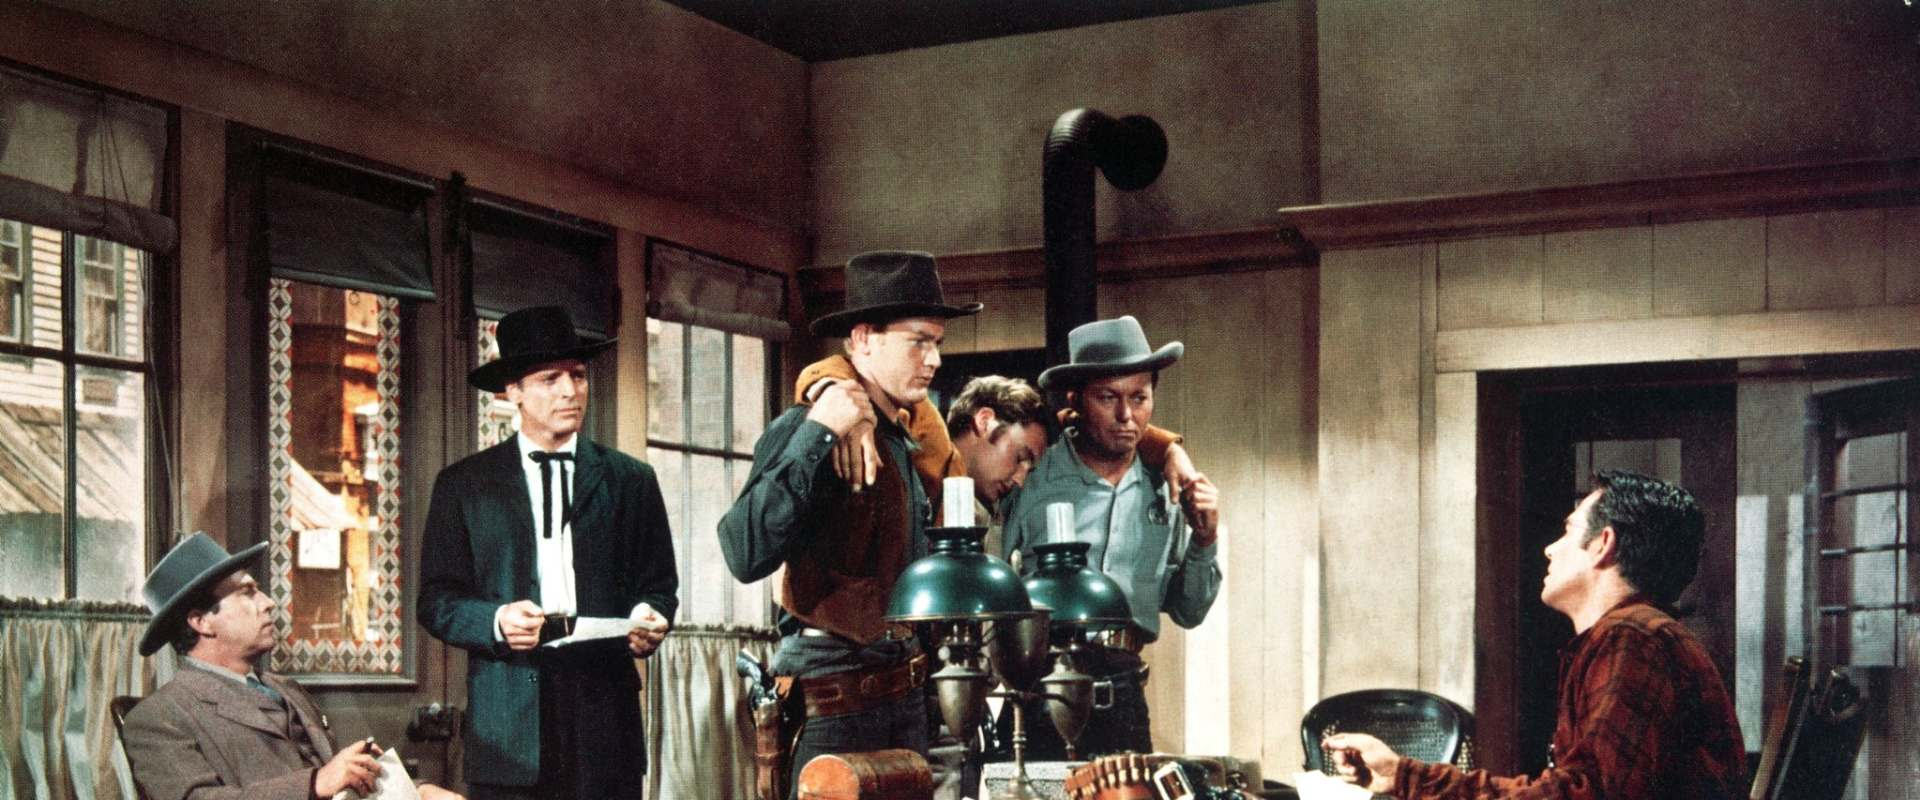 Gunfight at the O.K. Corral background 1